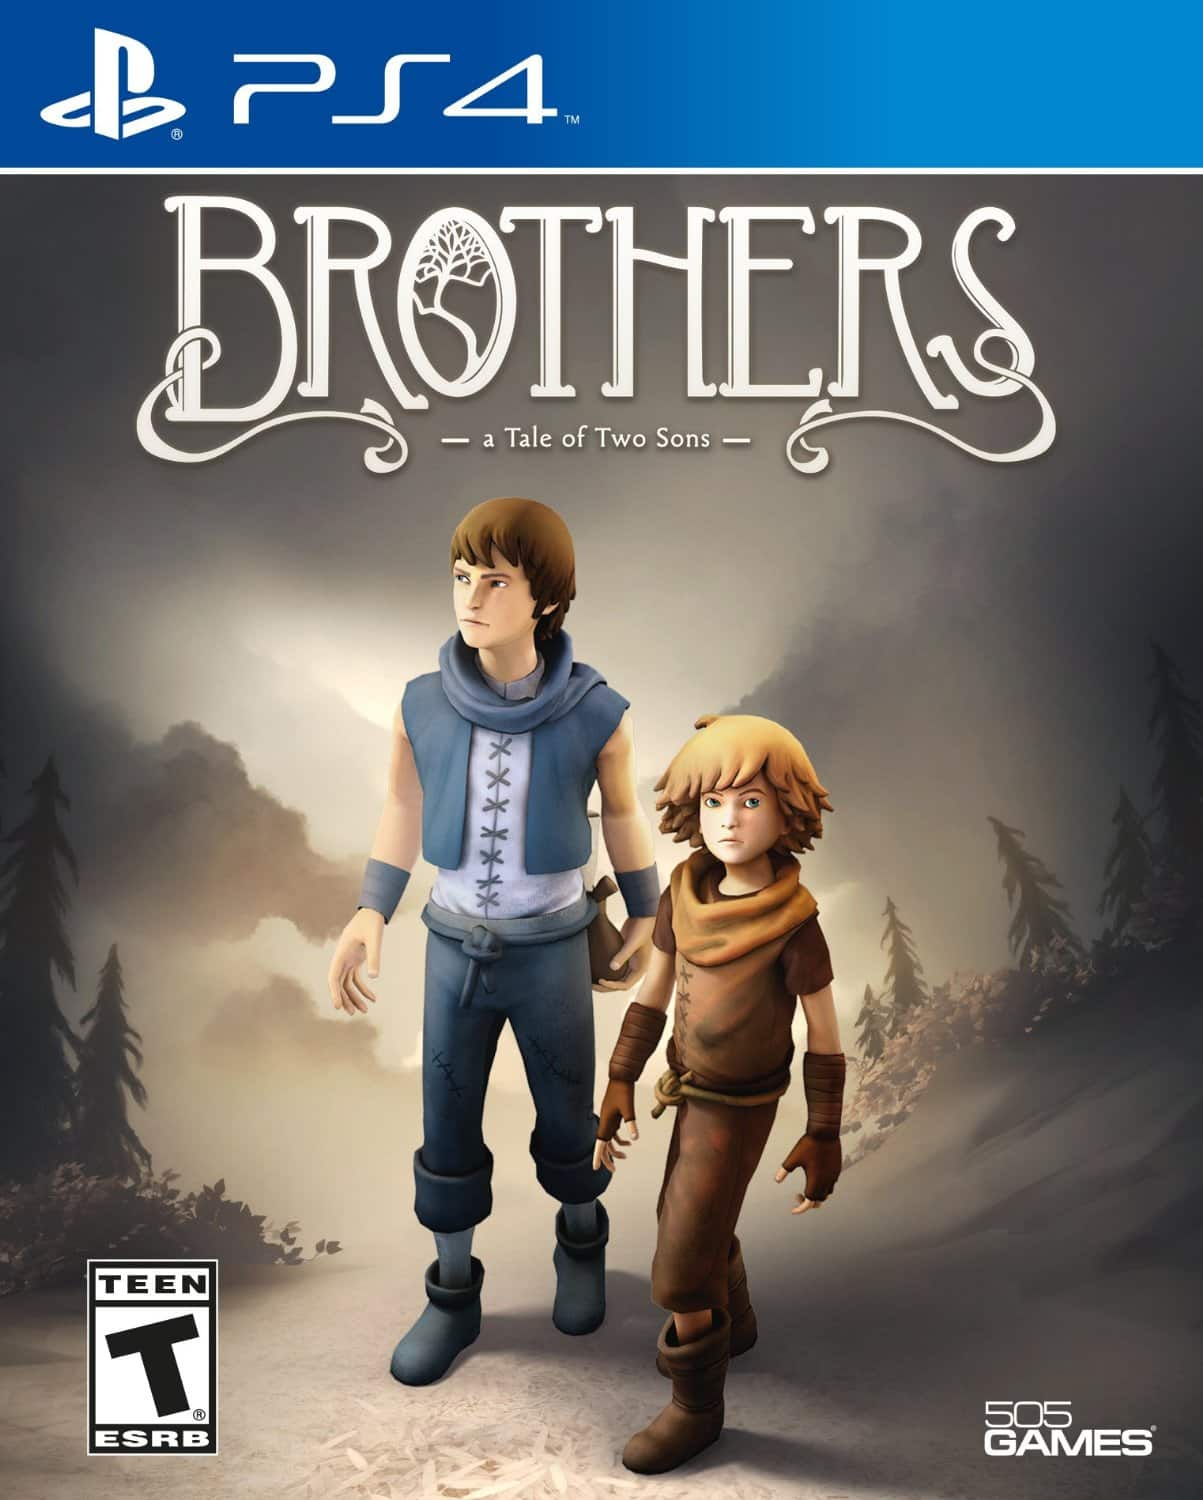 PSN Sale: The Witcher 3: Wild Hunt (PS4) $25, Brothers: A Tale of Two Sons (PS4)  $6 & More